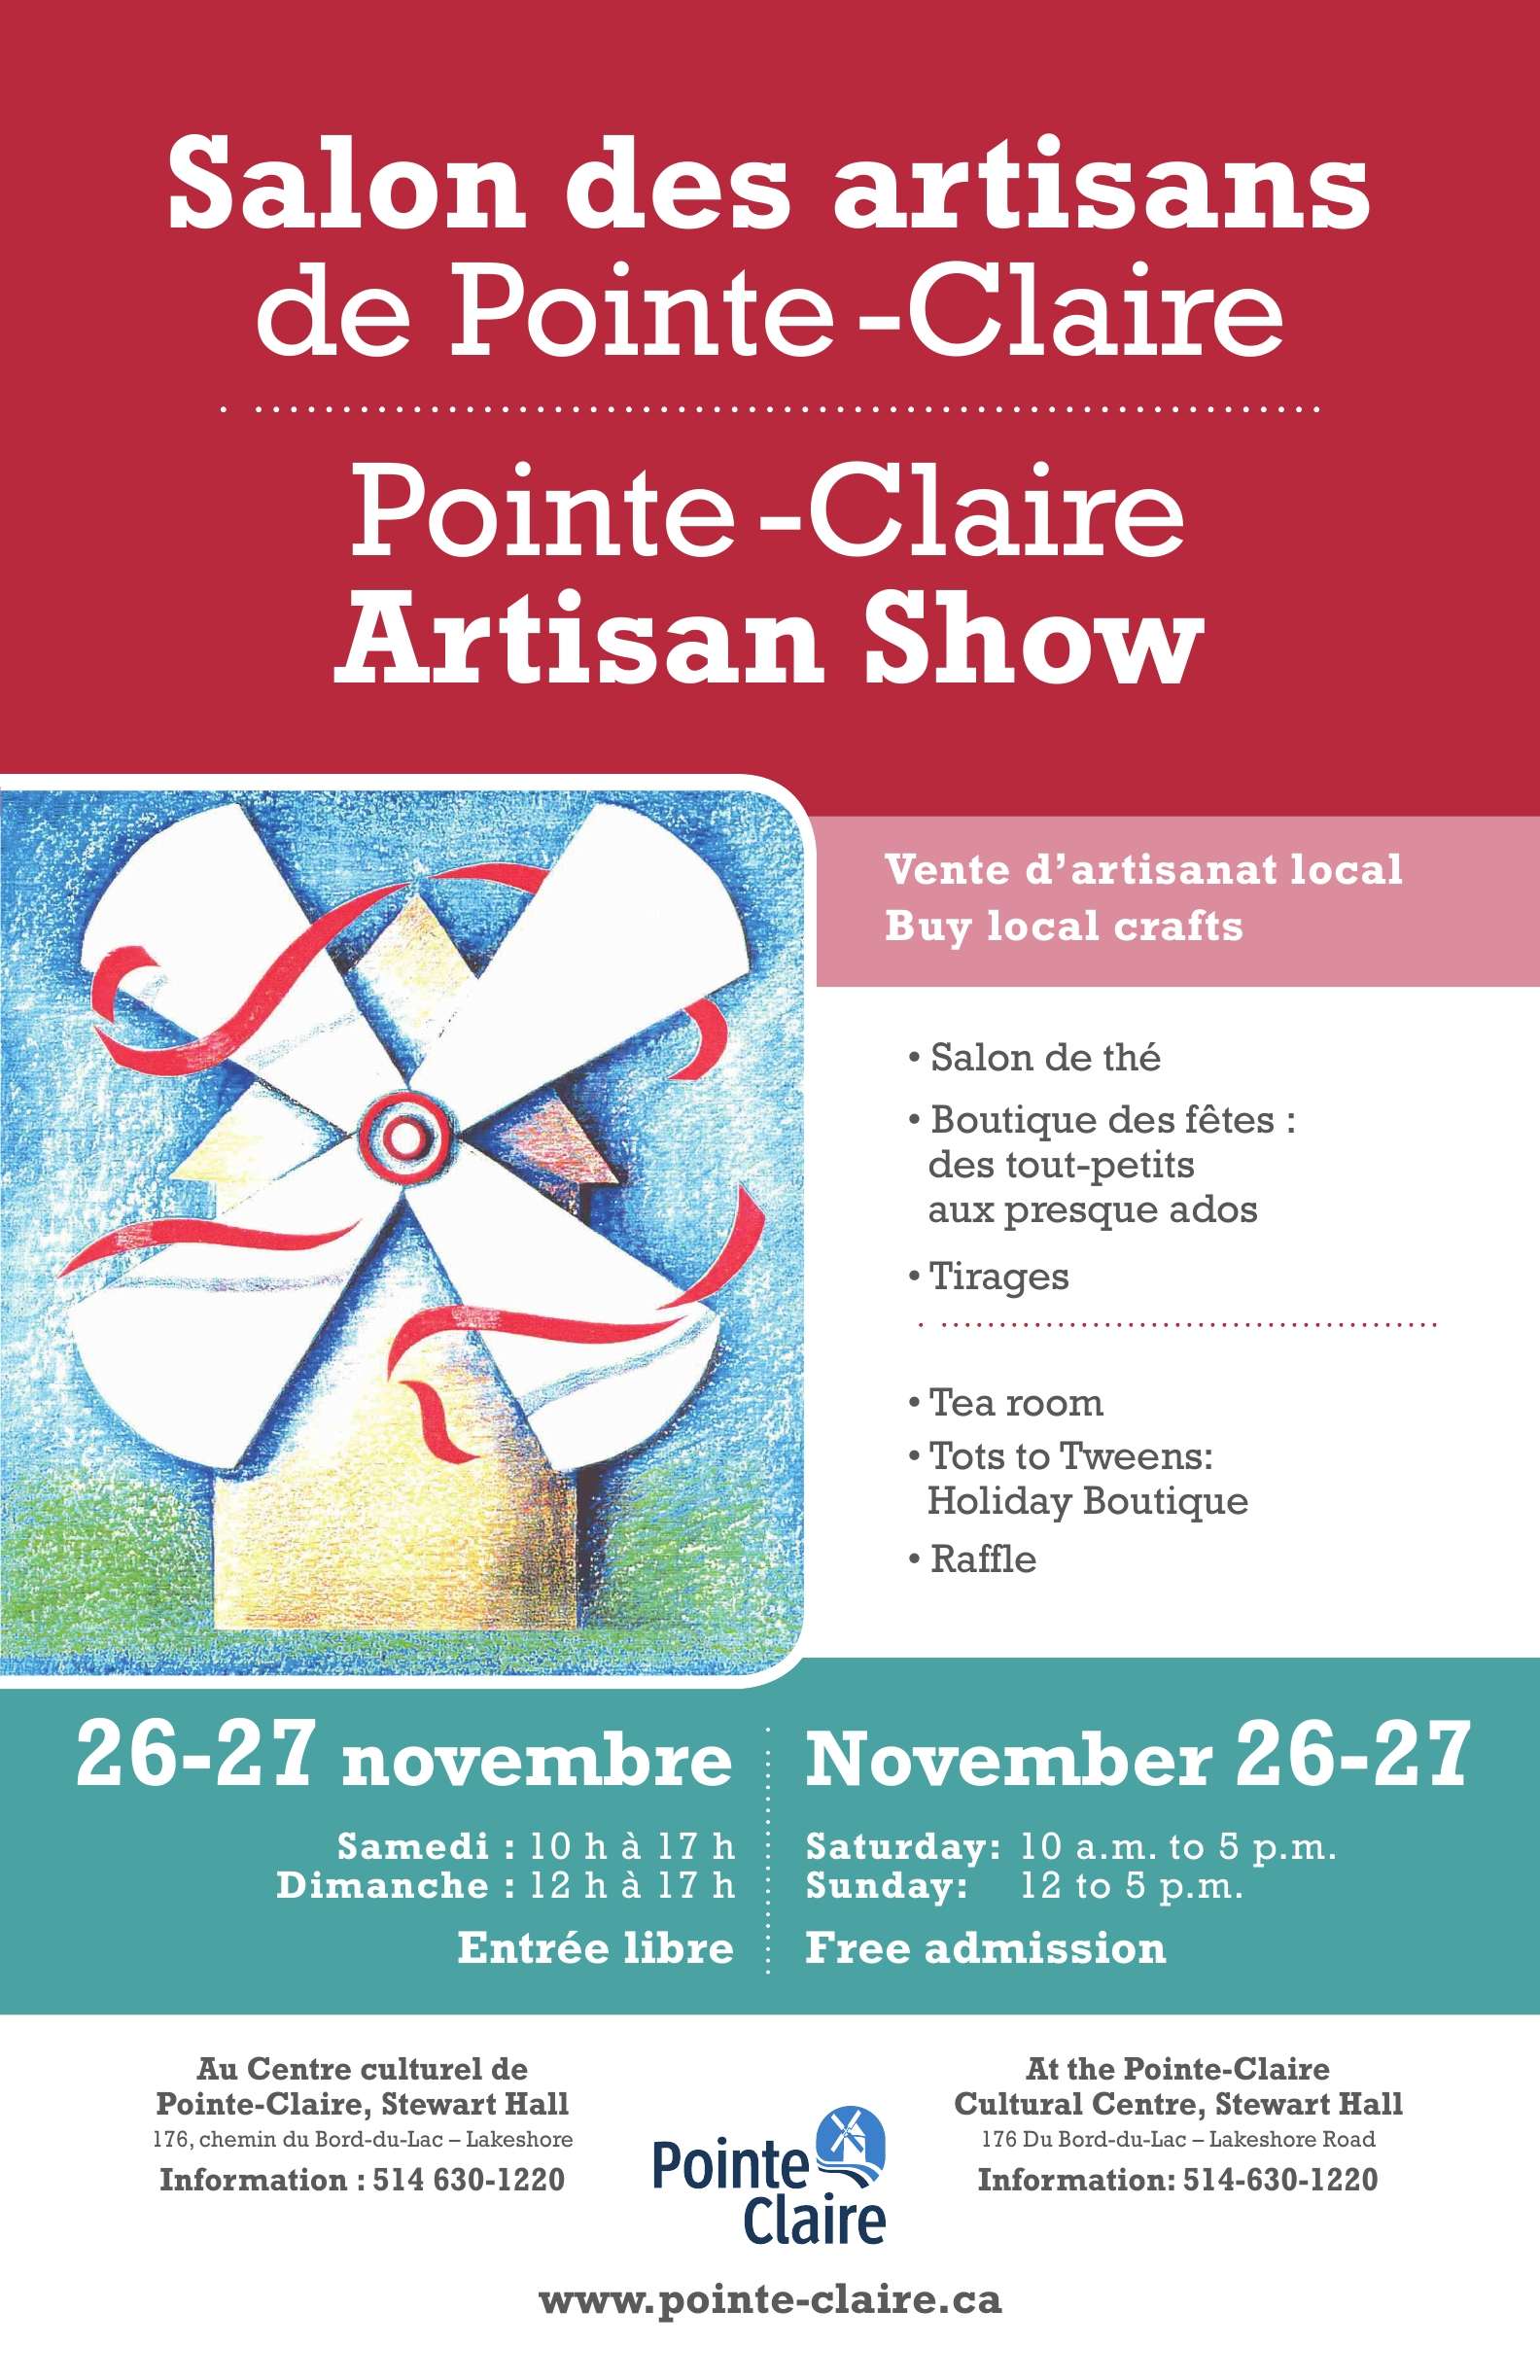 Salon des artisans 2016 ville de pointe claire for Salon artisanal